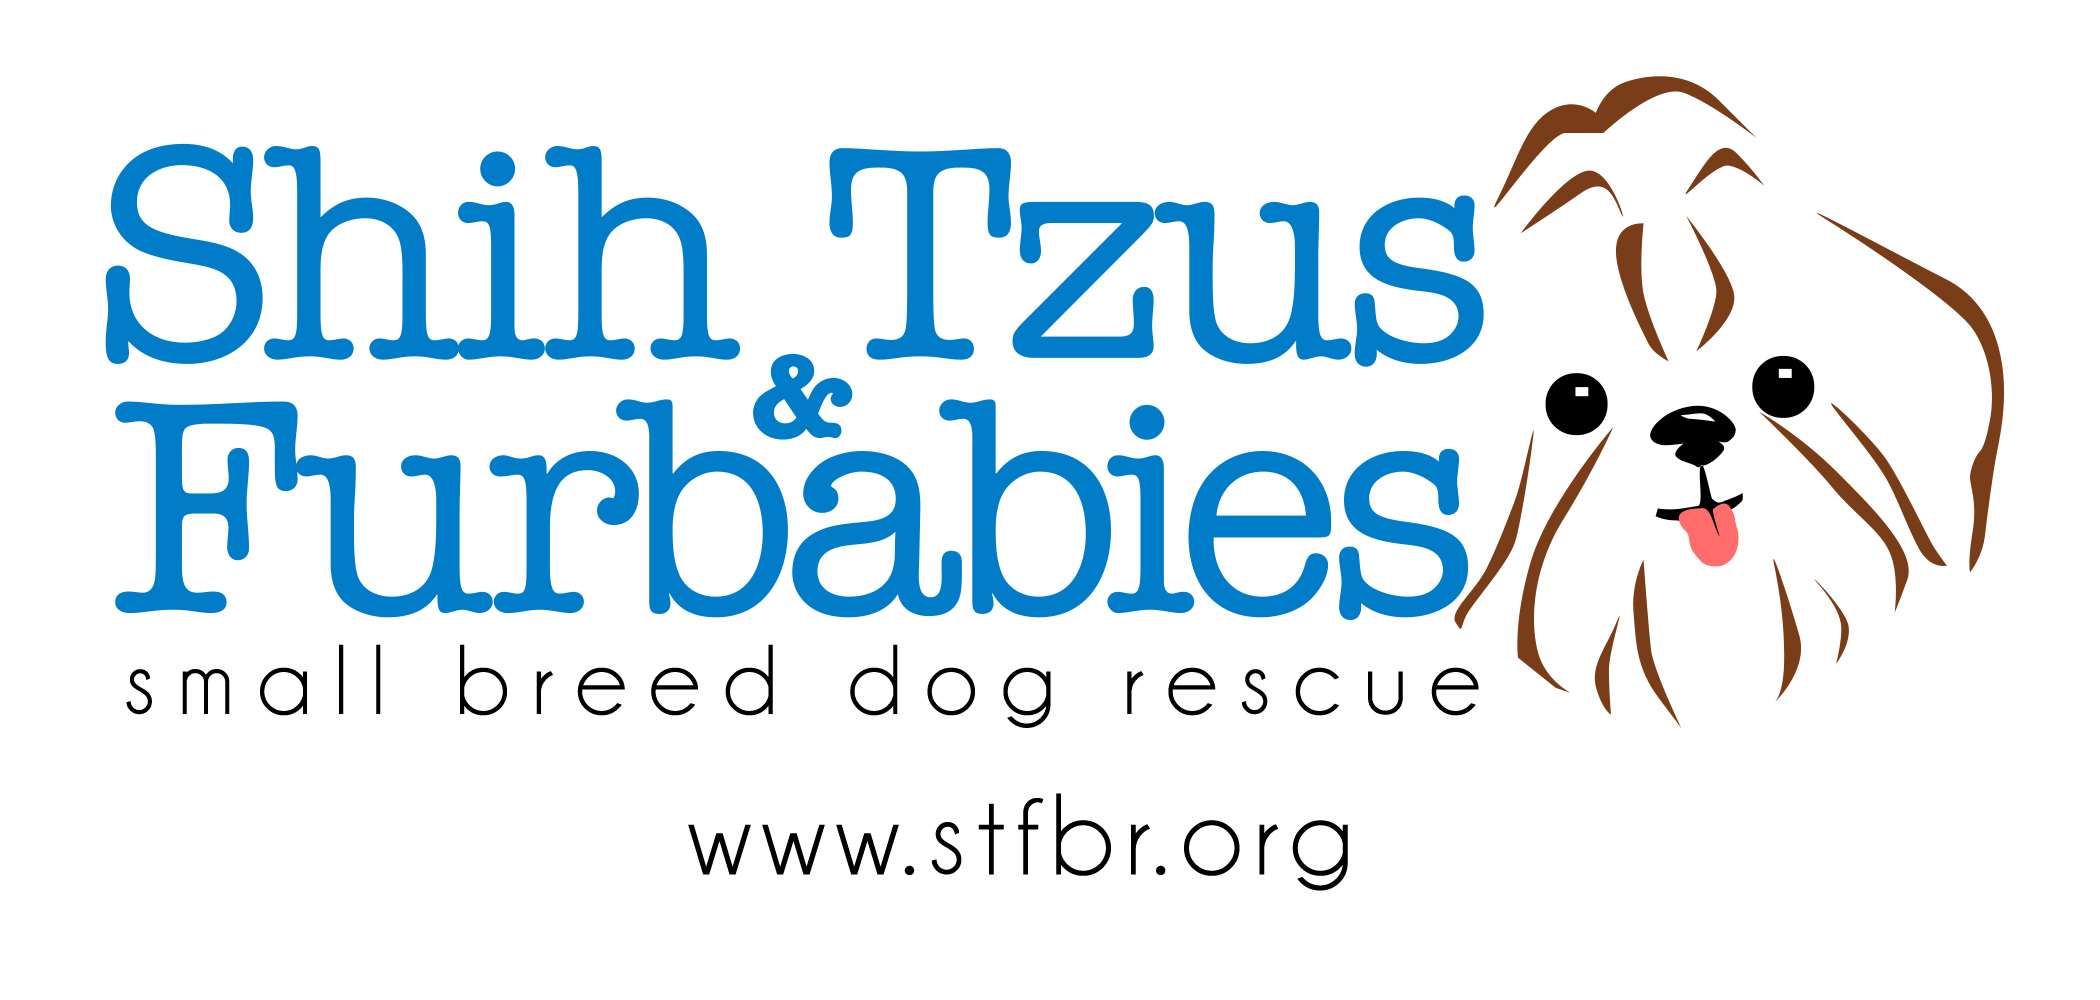 Welcome to STFBR rescue homepage - Shih Tzus & FurbabiesShih